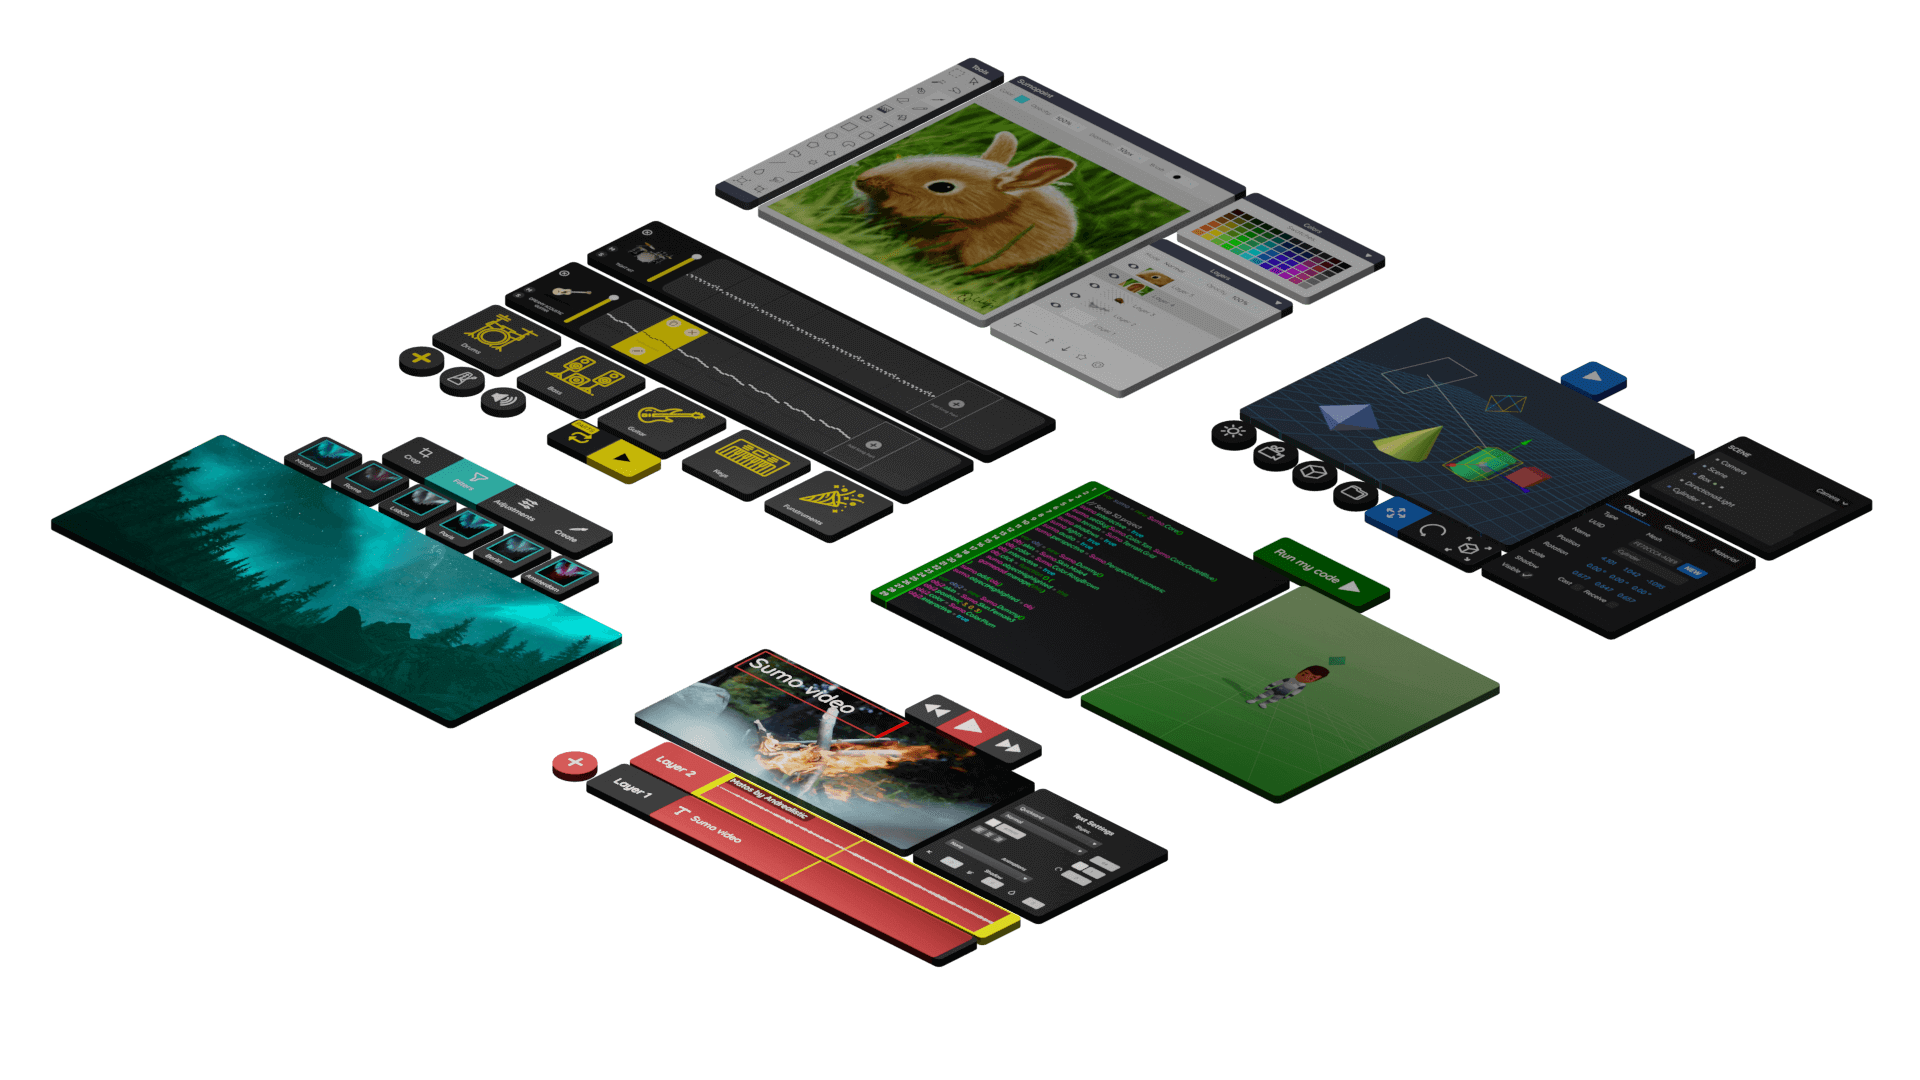 New creative toolbox launches ready to take on Adobe and update education systems globally